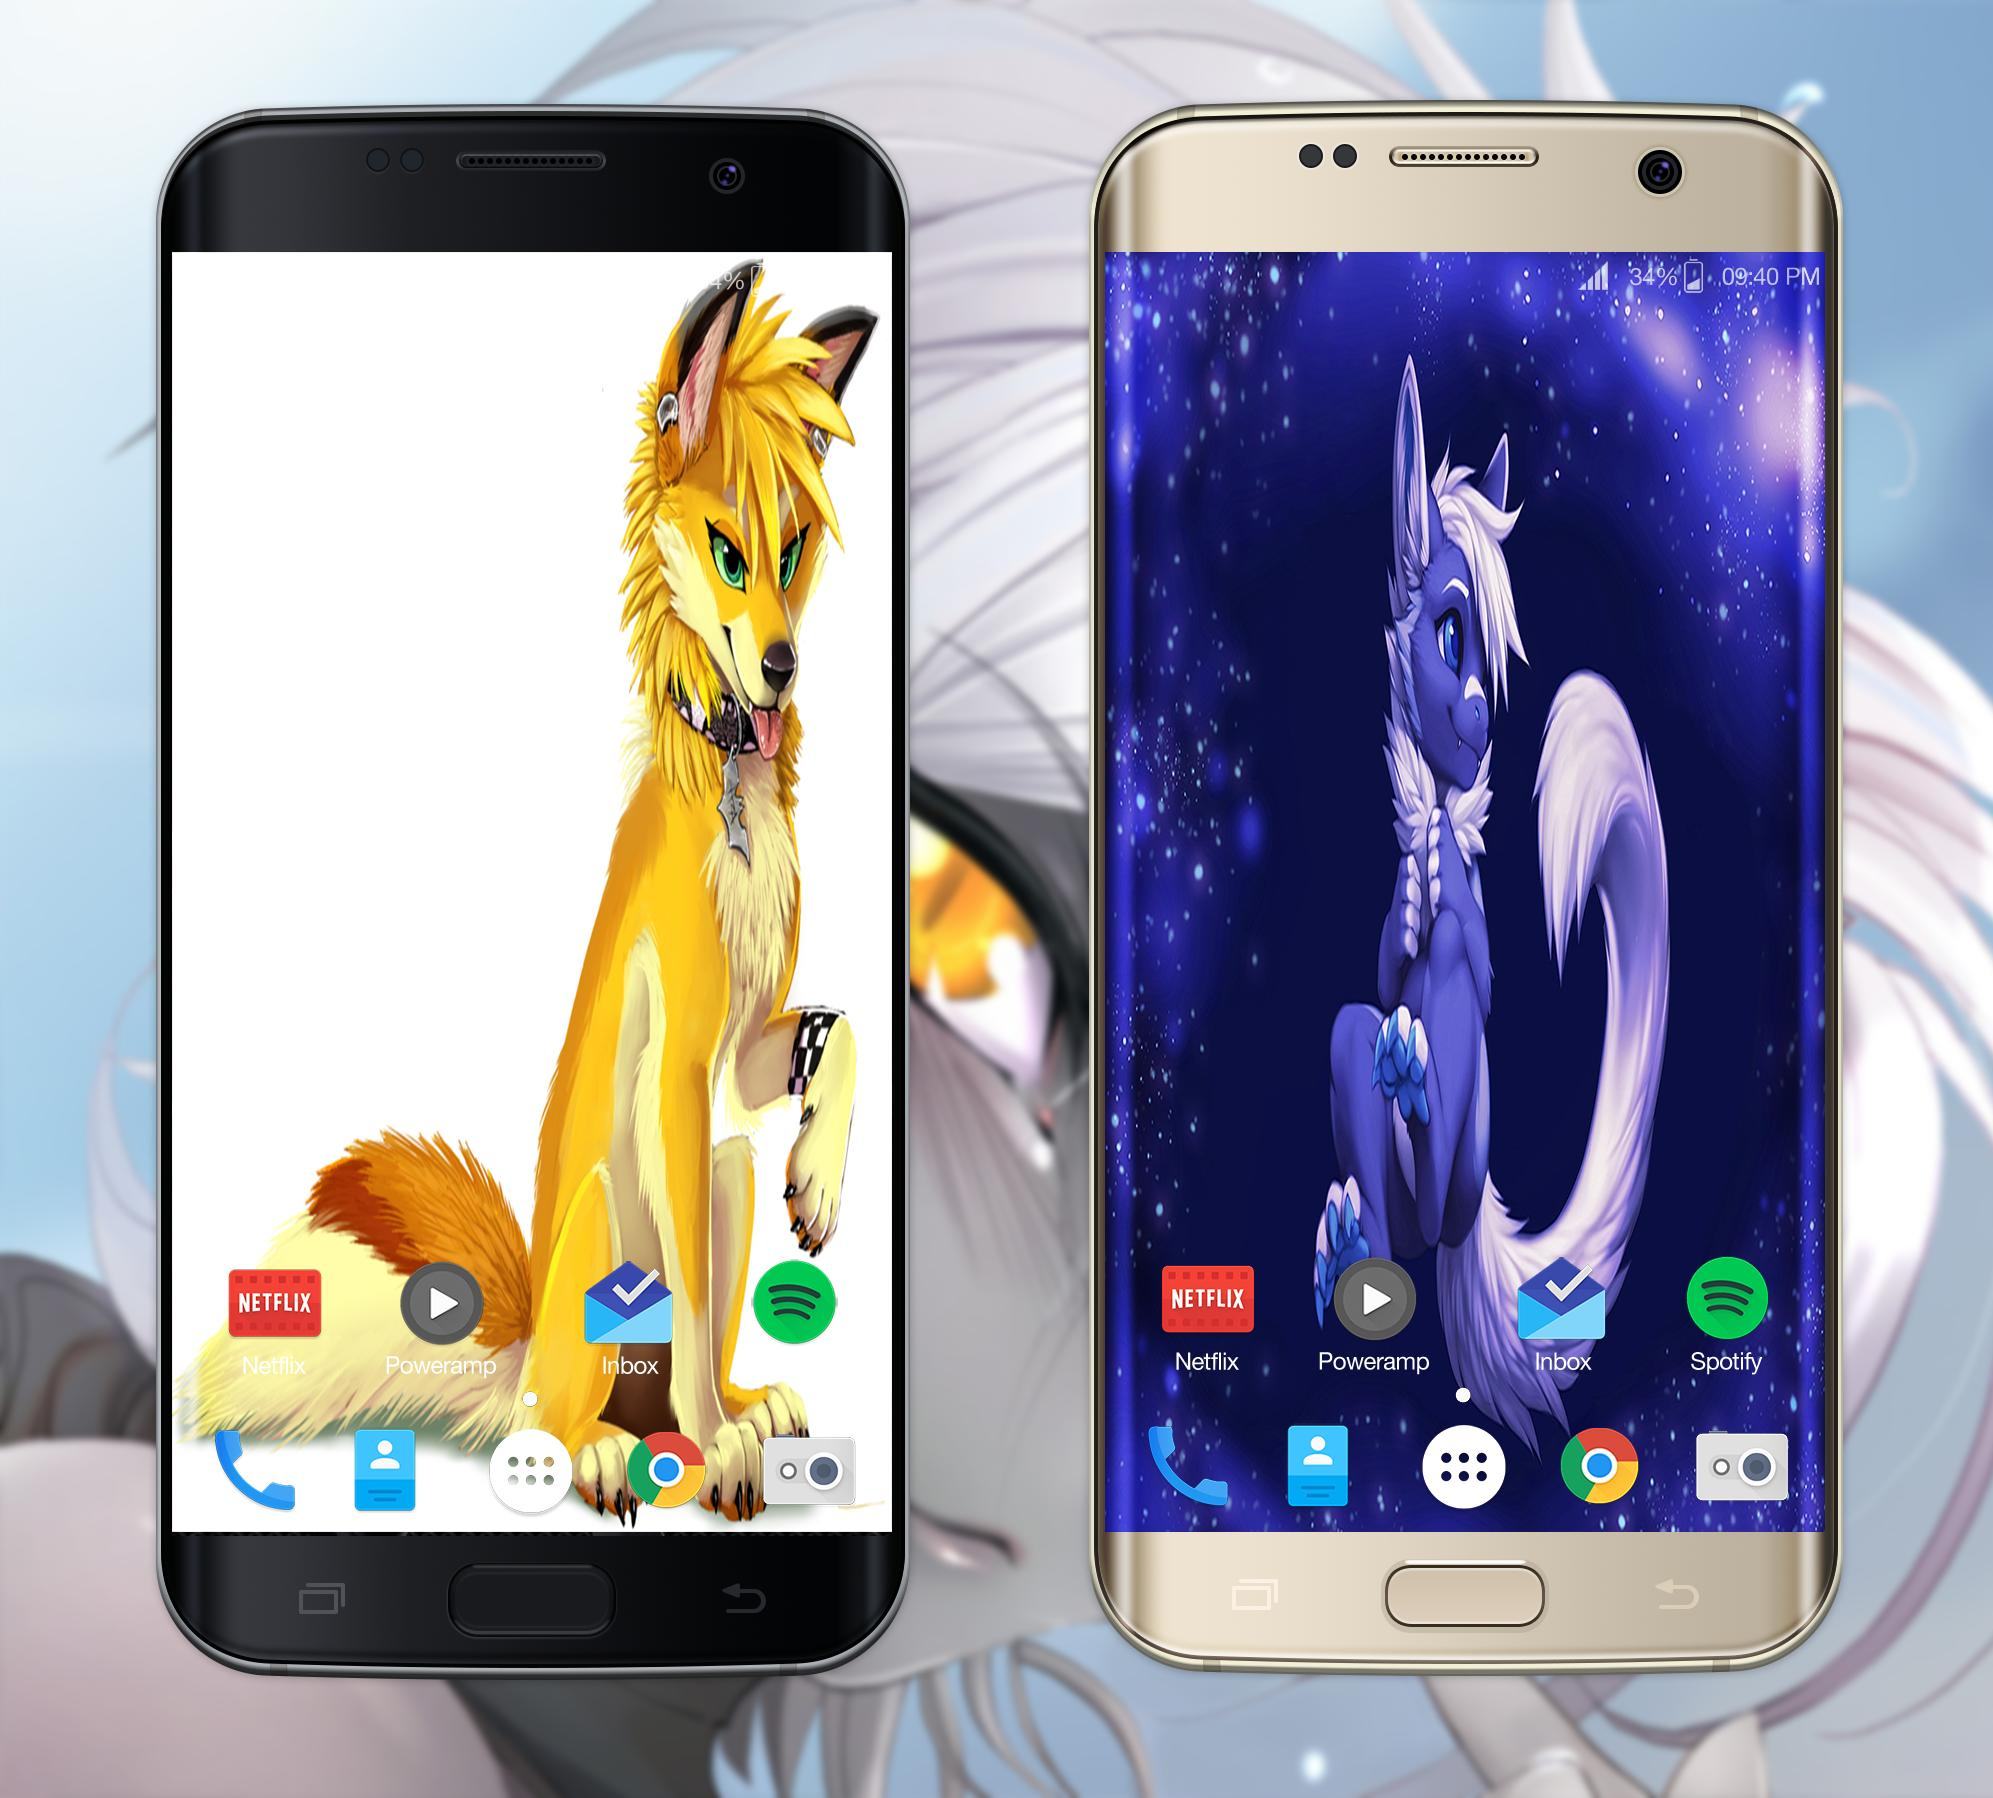 Furry Wallpaper For Android Apk Download